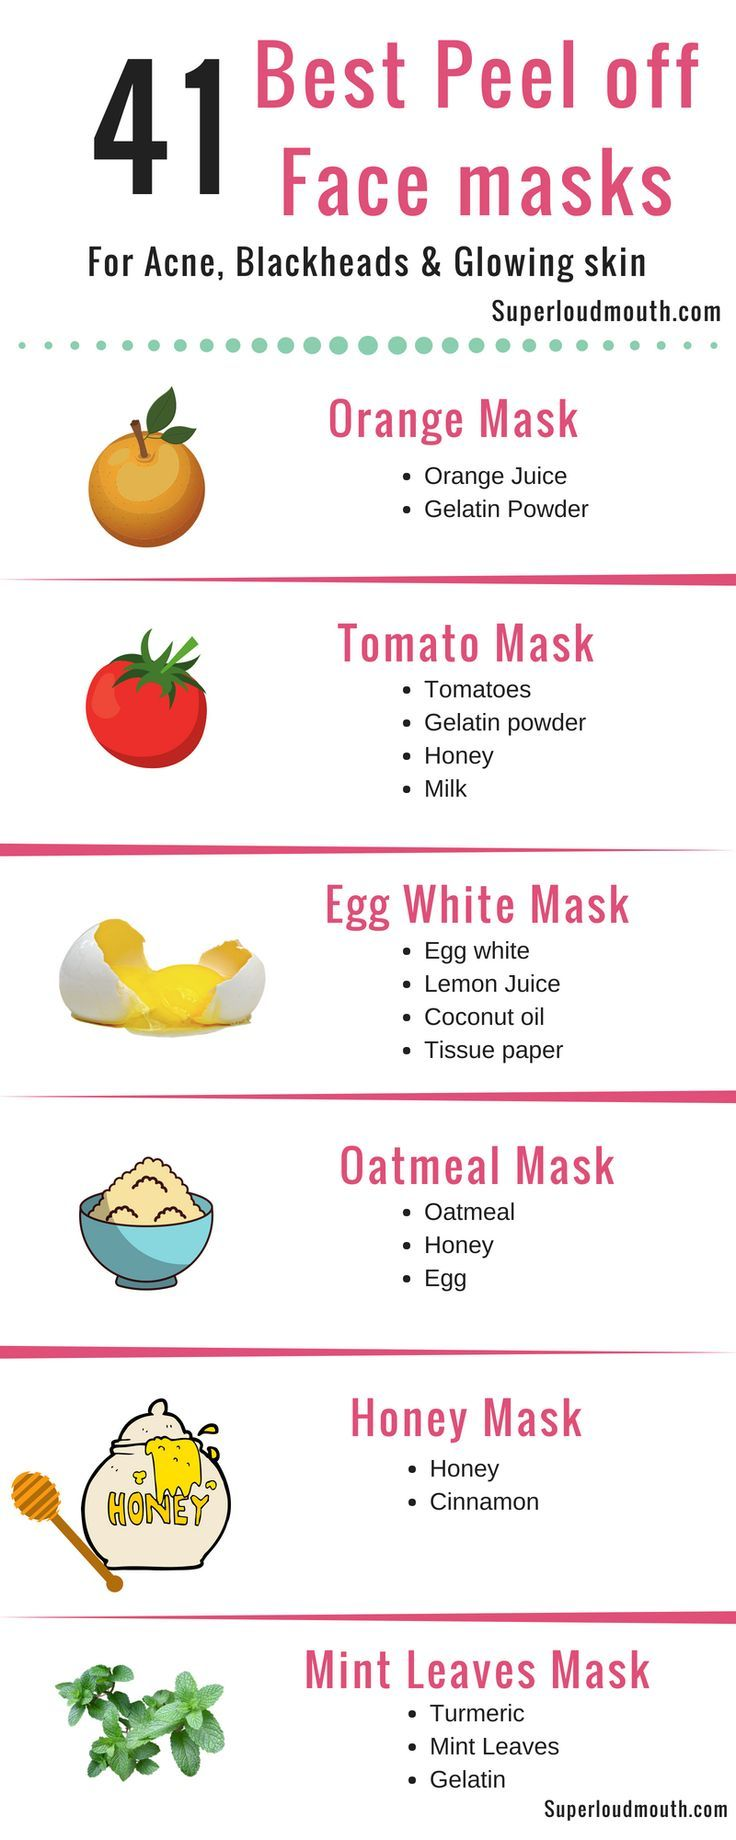 Best Peel Off Masks For Acne Blackheads And Glowing Skin Skincare Peeling Facemask Blackheads Best Peel Off Mask Homemade Face